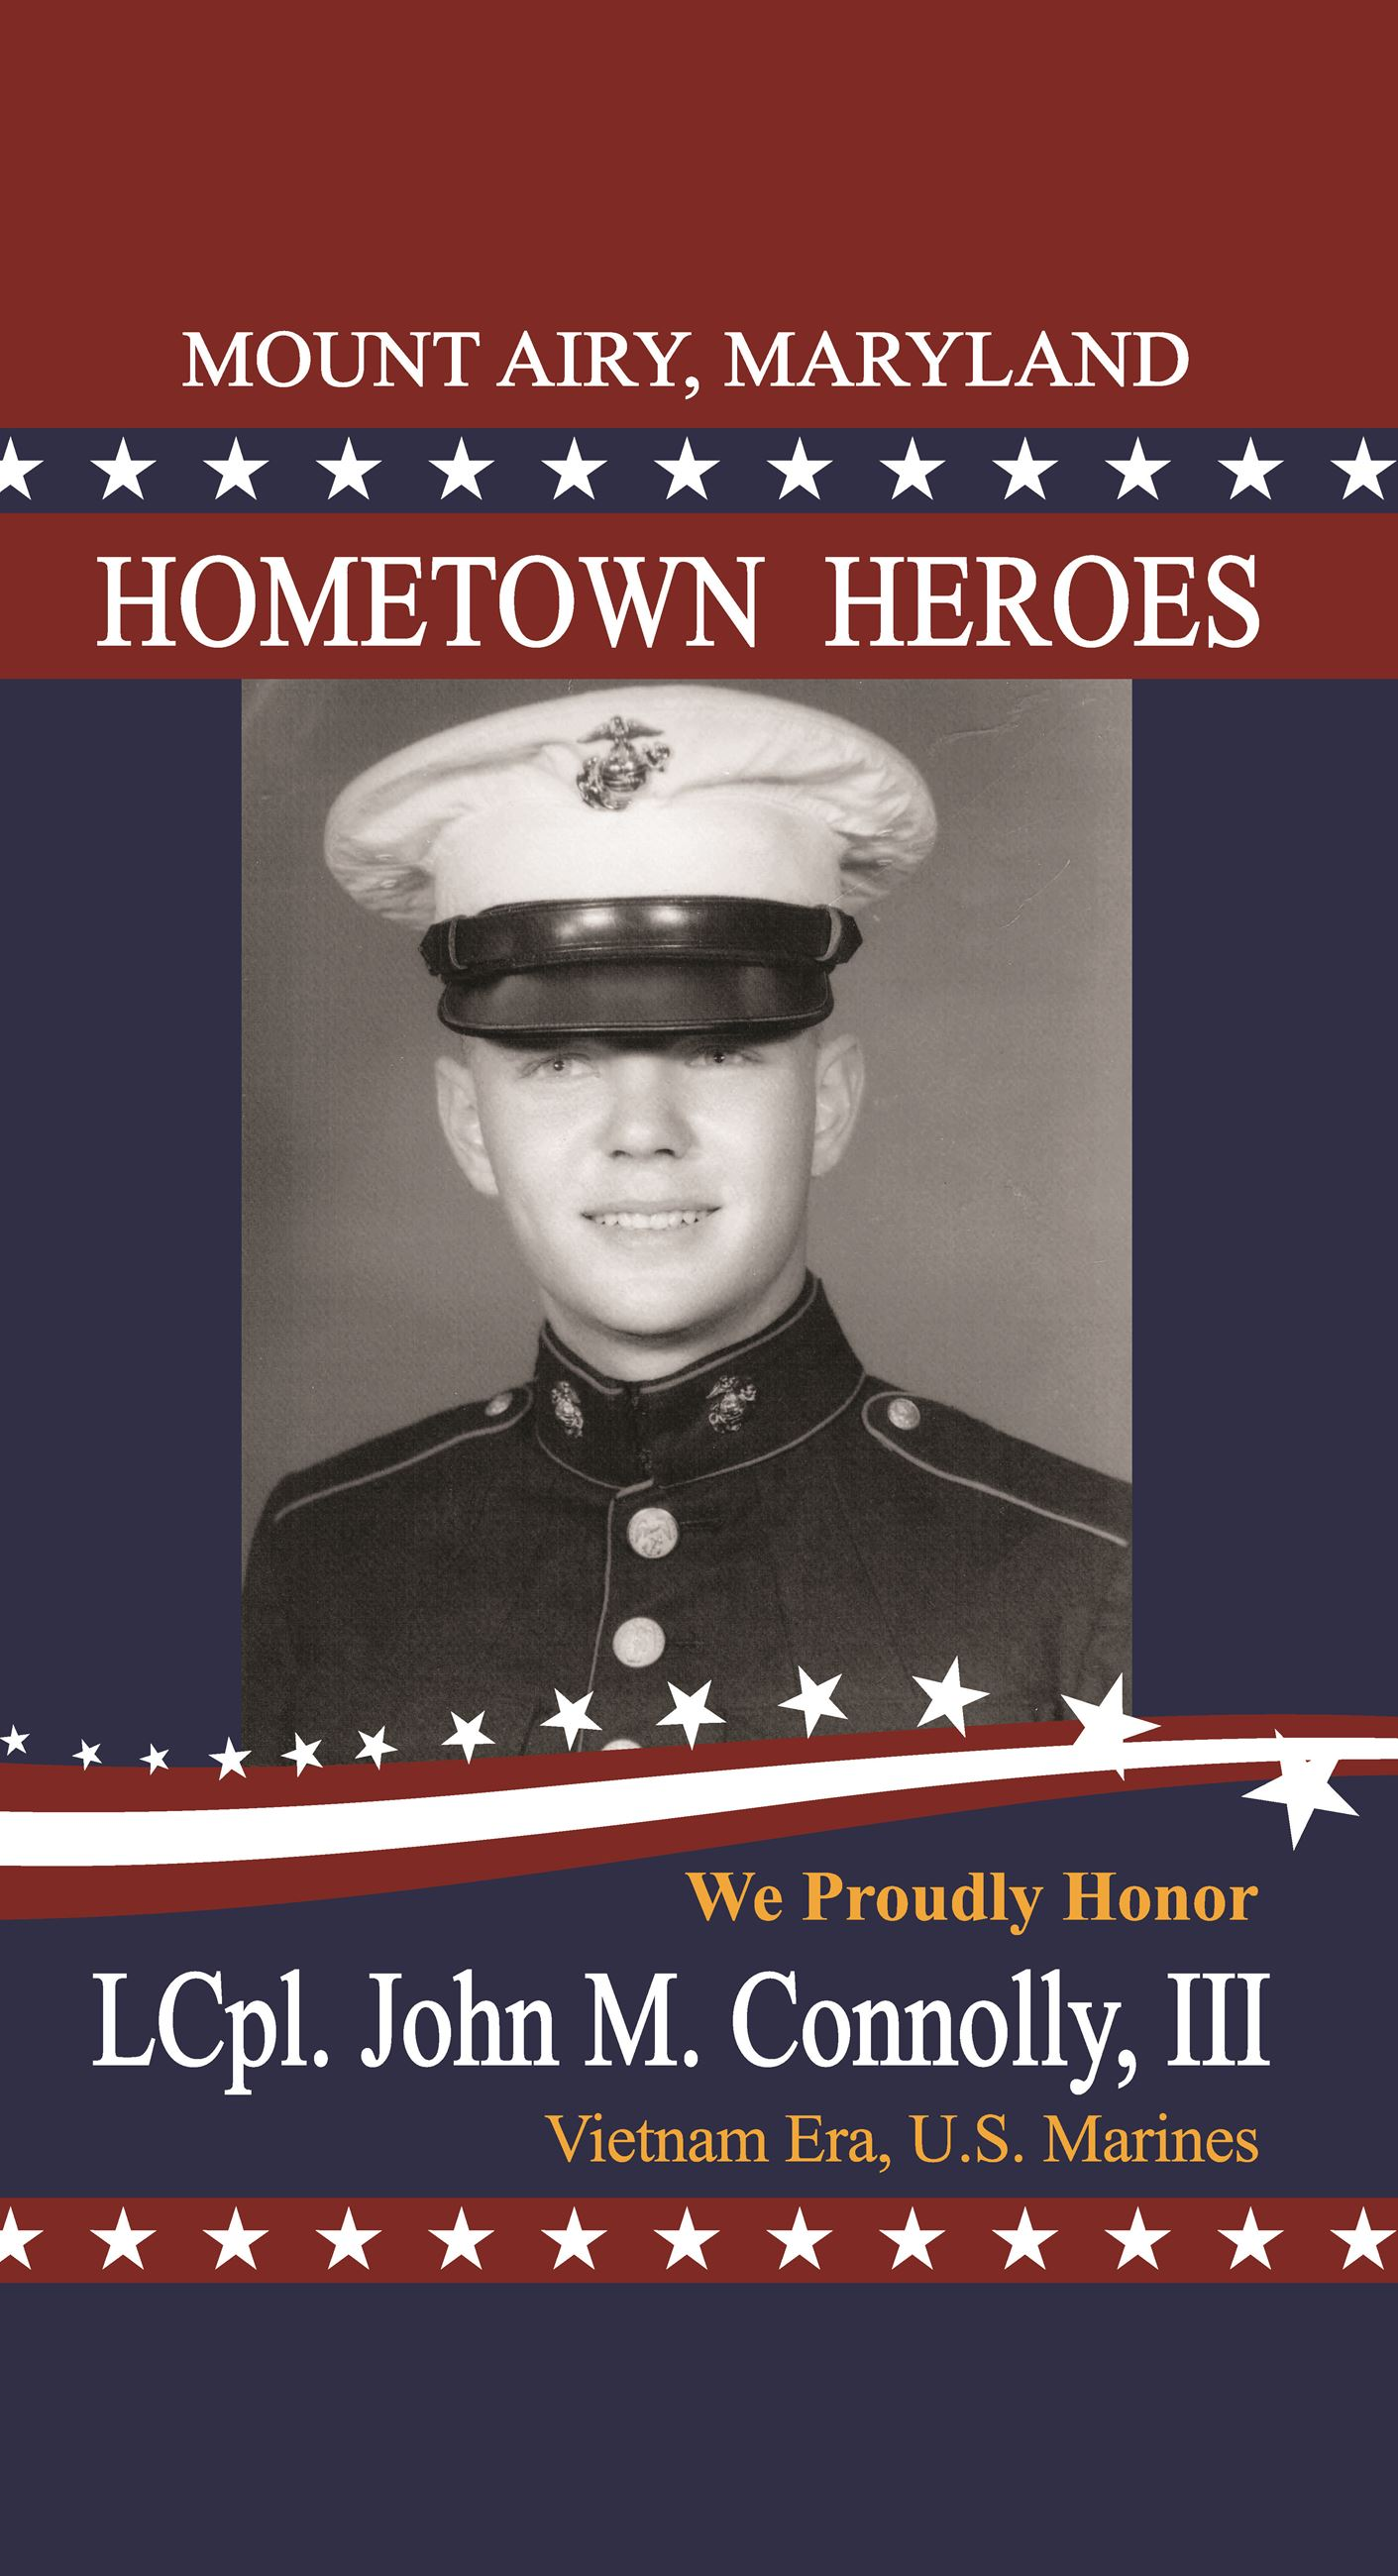 JohnMConnollyIII_MtAiryHeroes-Flag-24x44-Proof001